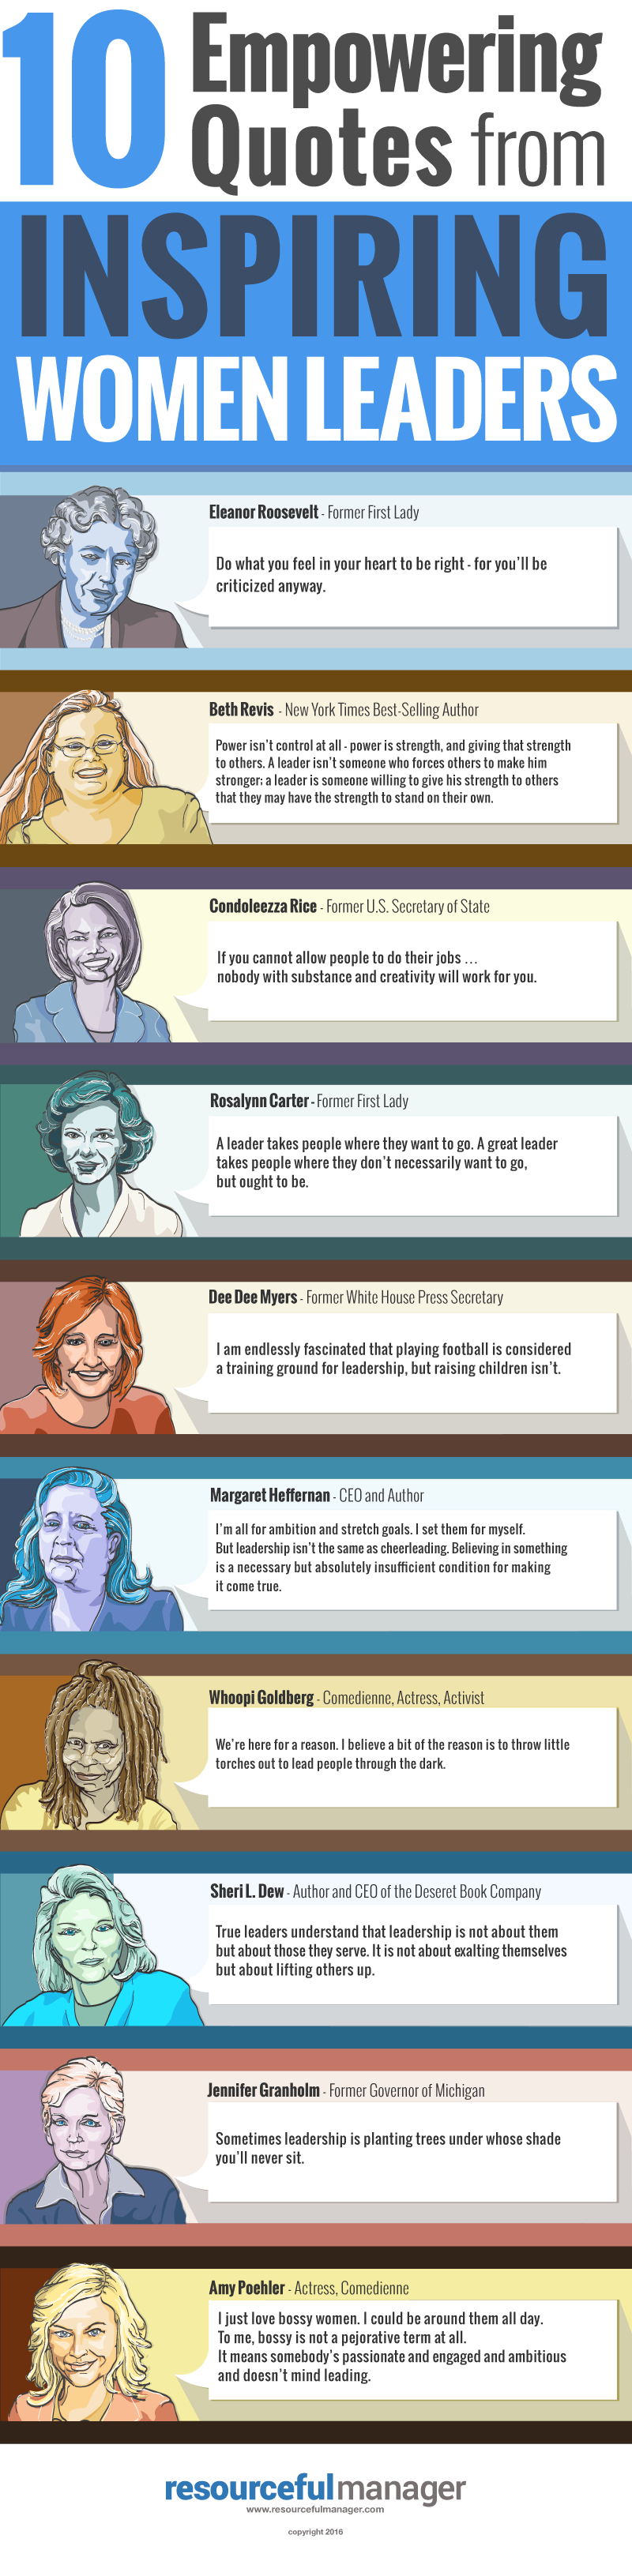 International Women's Day - Inspiring quotes from women leaders